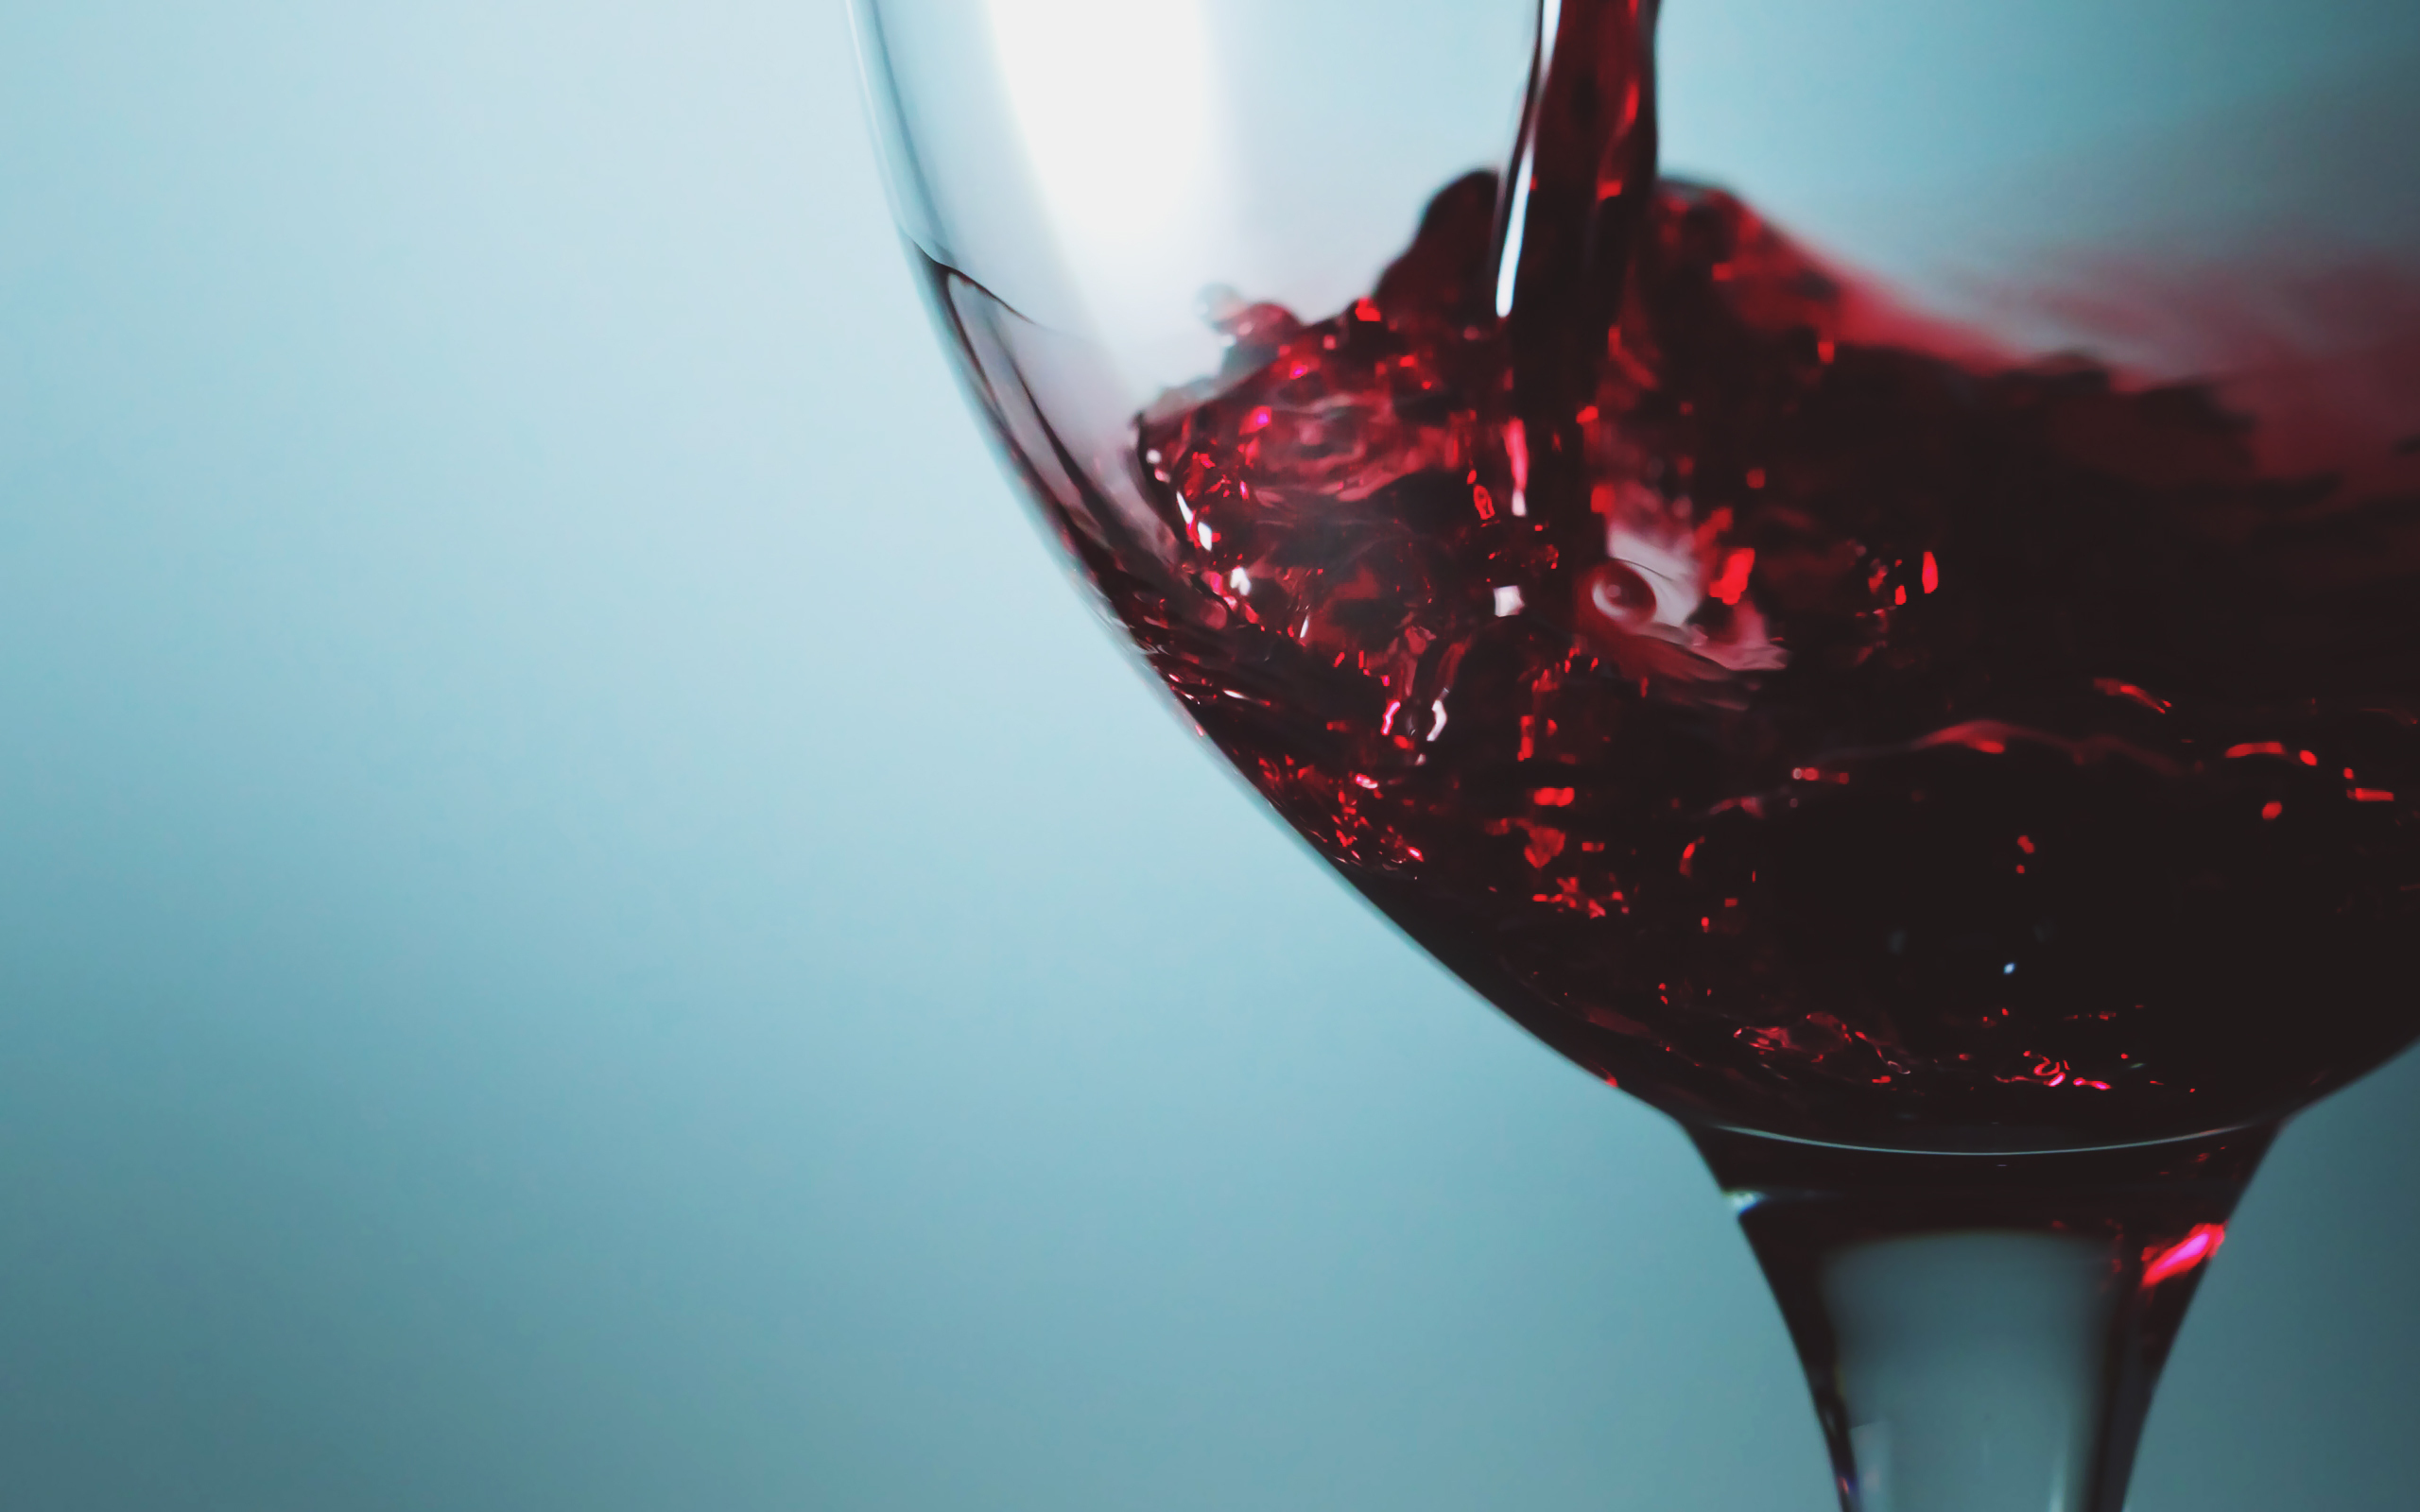 Image: Glass, red, wine